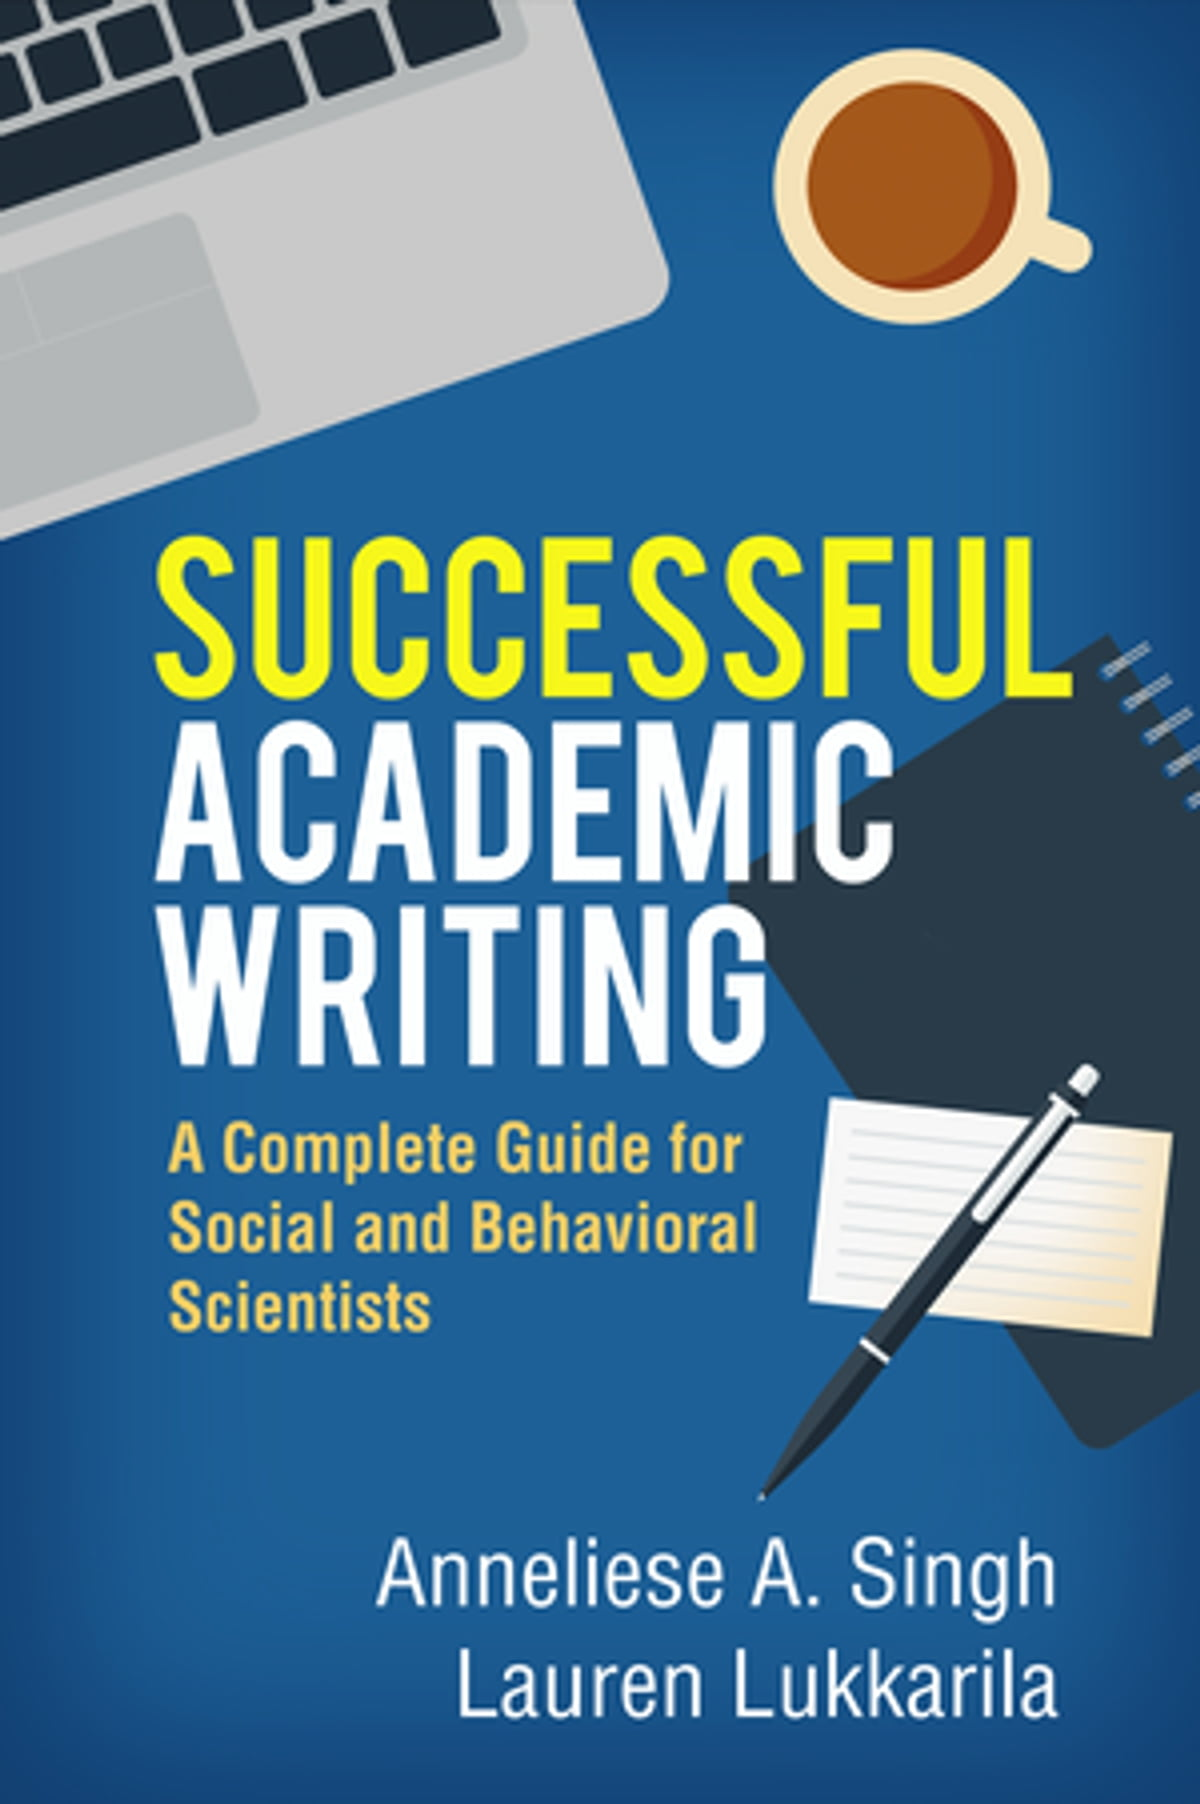 picture How to Be a Successful Academic